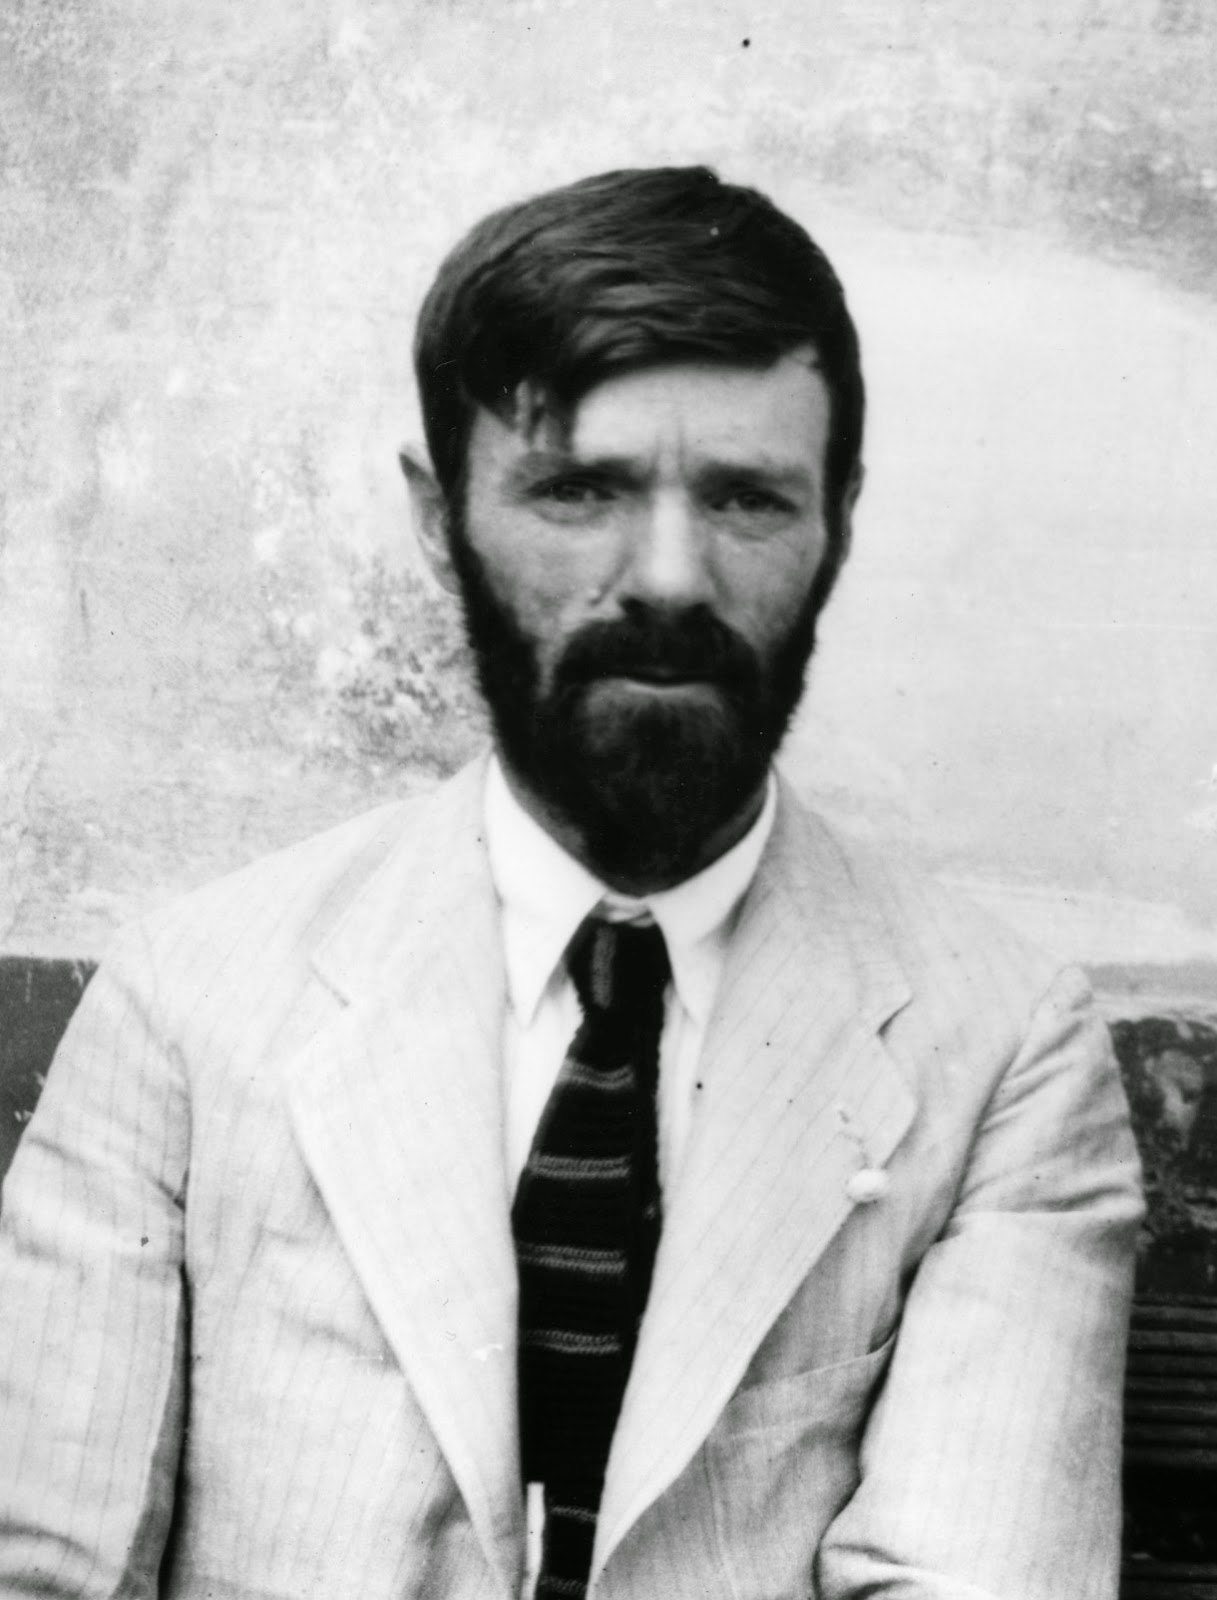 d h lawrence analysis On lawrence's fine poem about all things green was d h lawrence (1885-1930) an imagist he's well-known as a novelist, slightly less celebrated as a poet and a writer of some truly wonderful short stories.